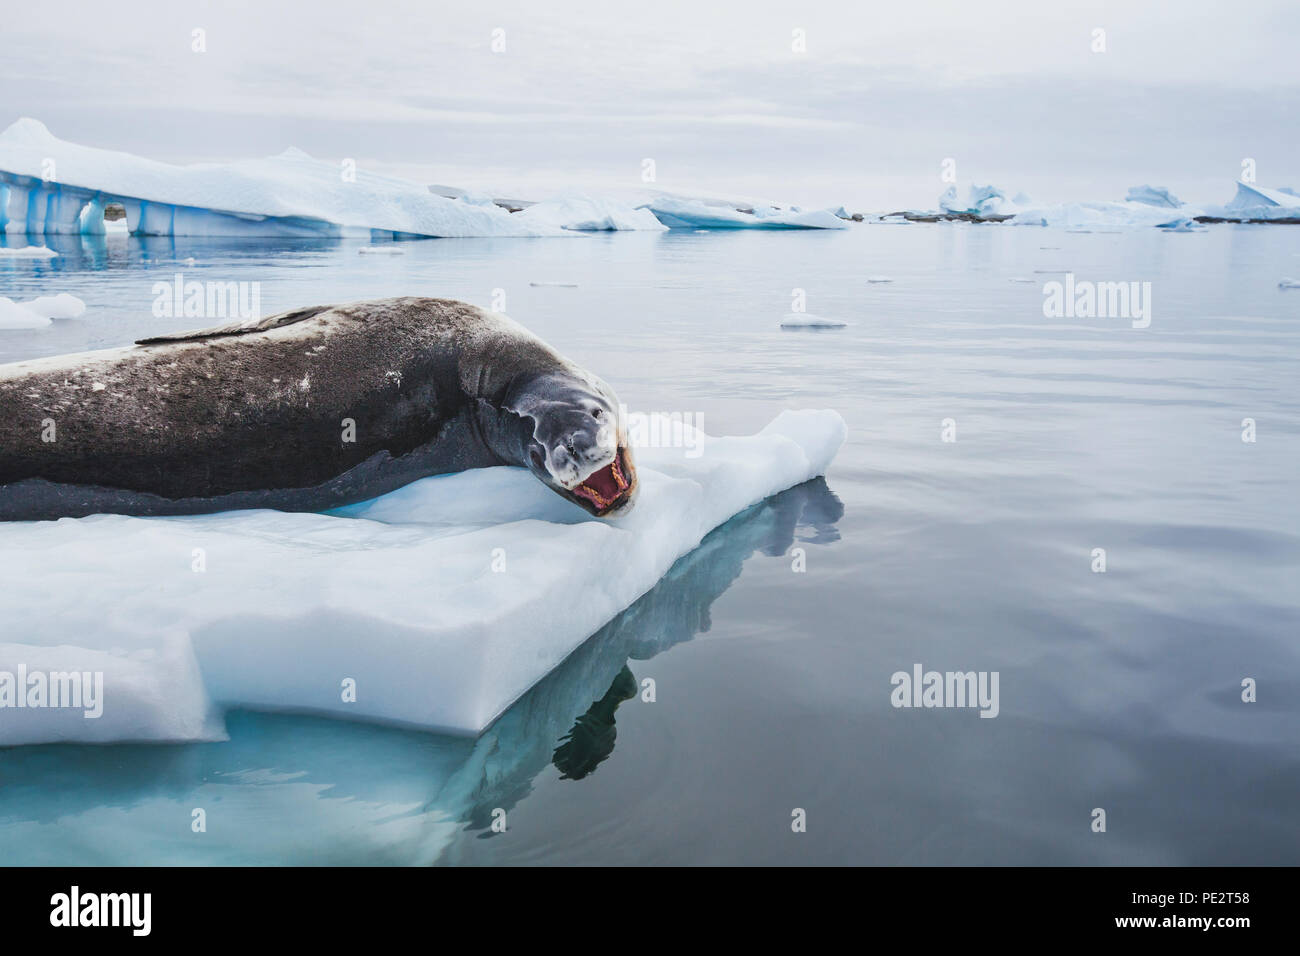 leopard seal with open mouth resting on iceberg in Antarctica Stock Photo